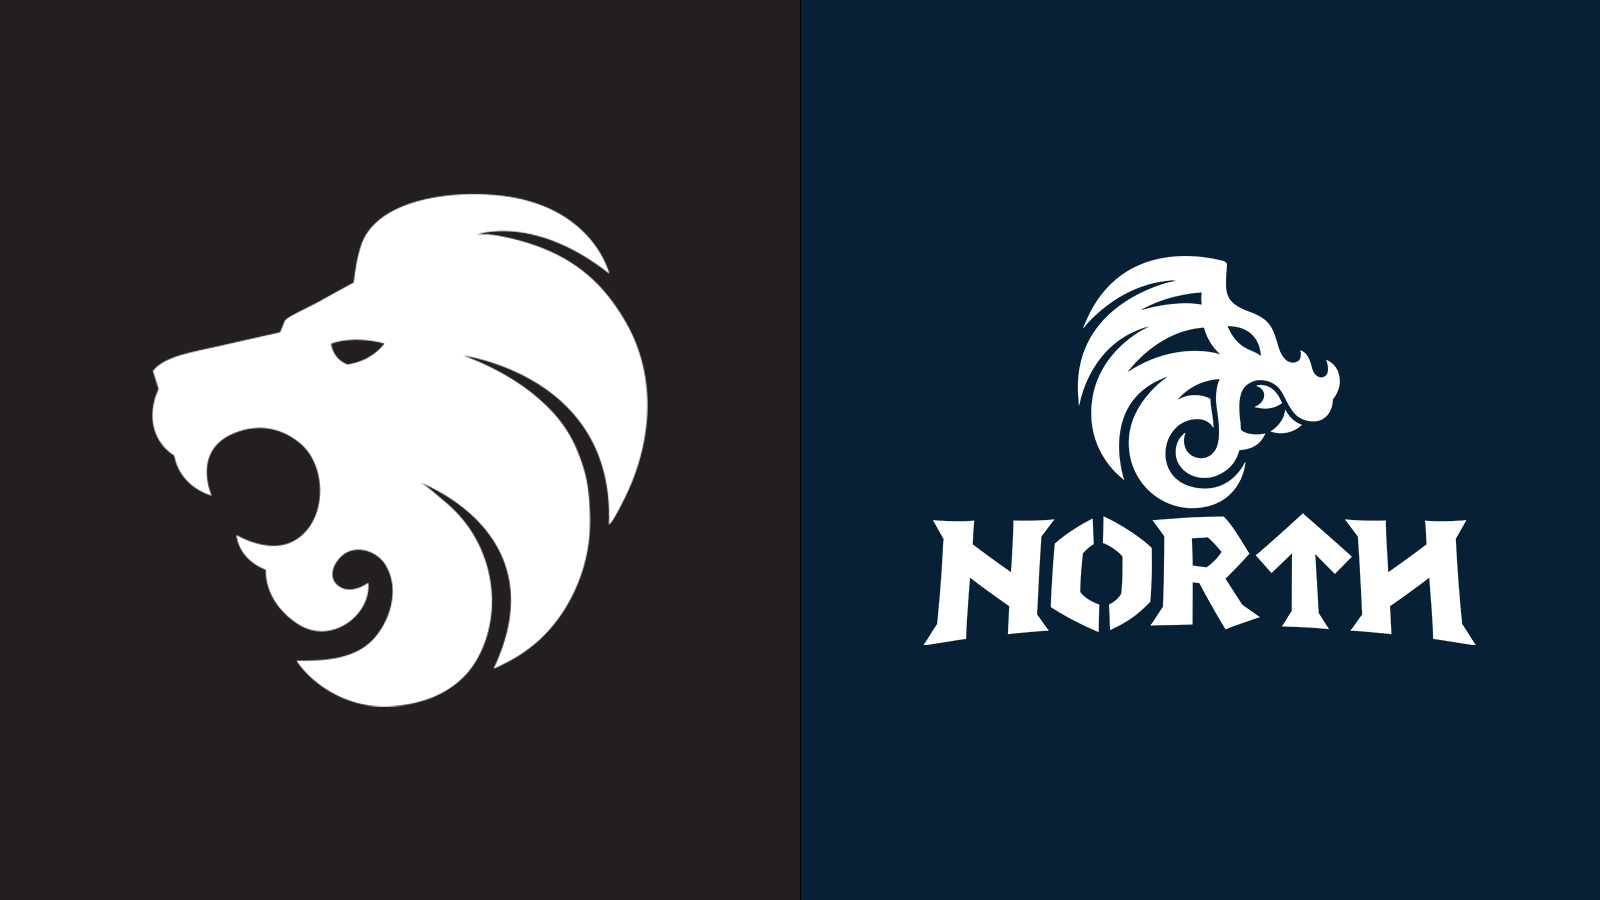 North rebrand